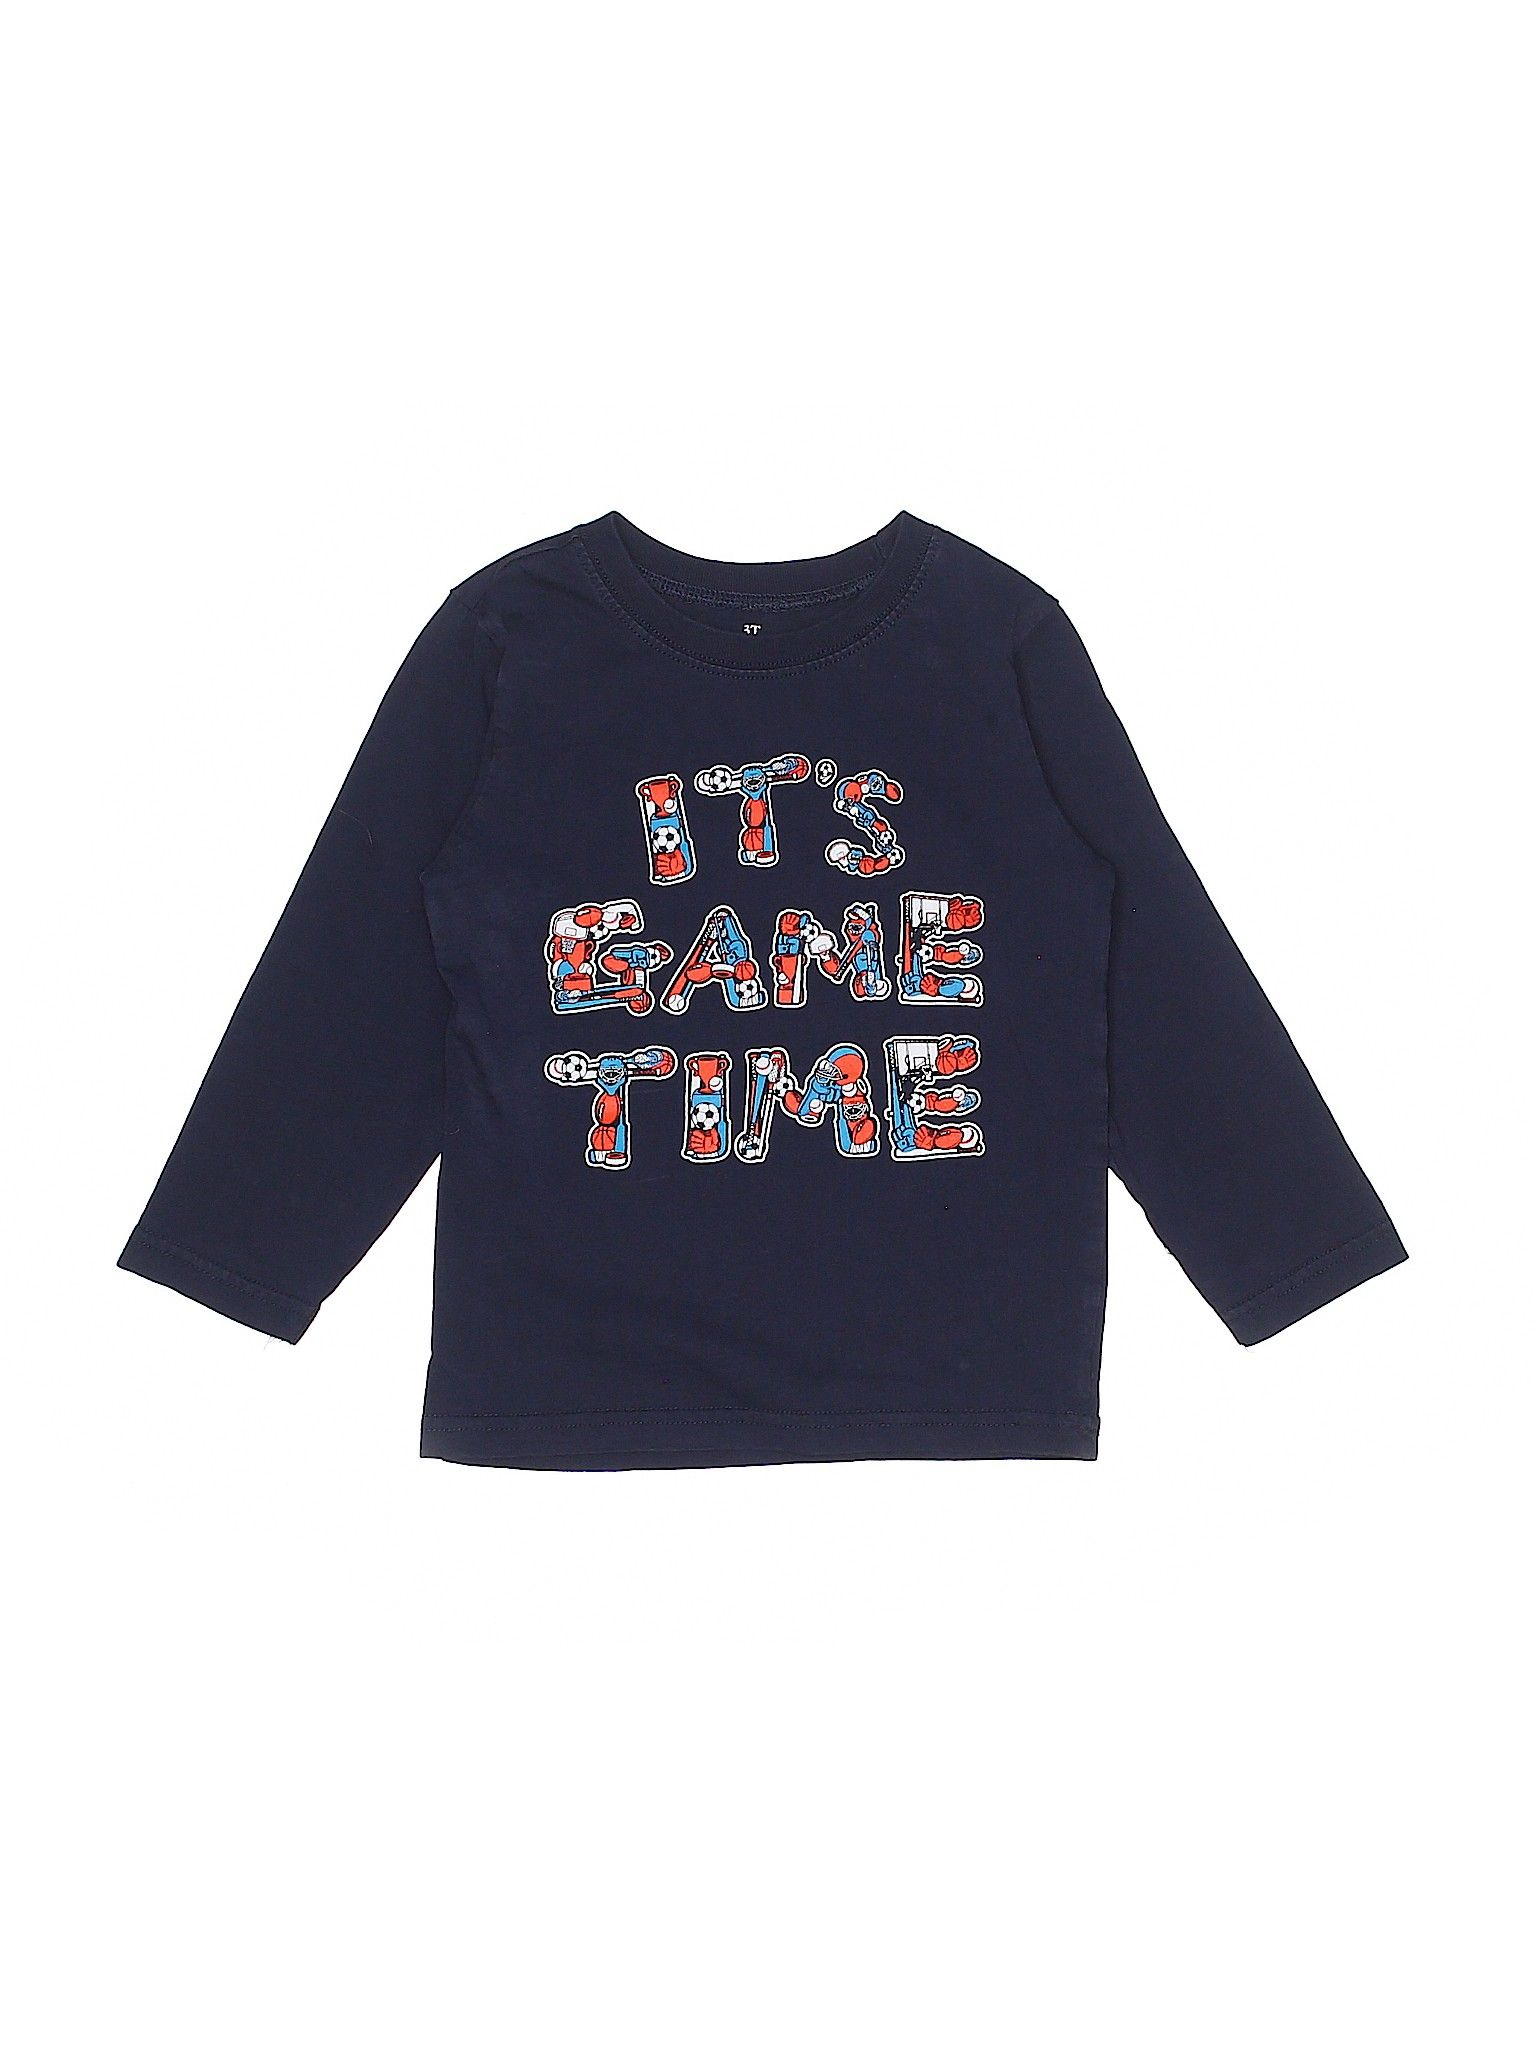 The Children S Place Long Sleeve T Shirt Blue Graphic Crew Neck Boy S Tops Size 3toddler Second Hand Clothes Boys Top Clothes